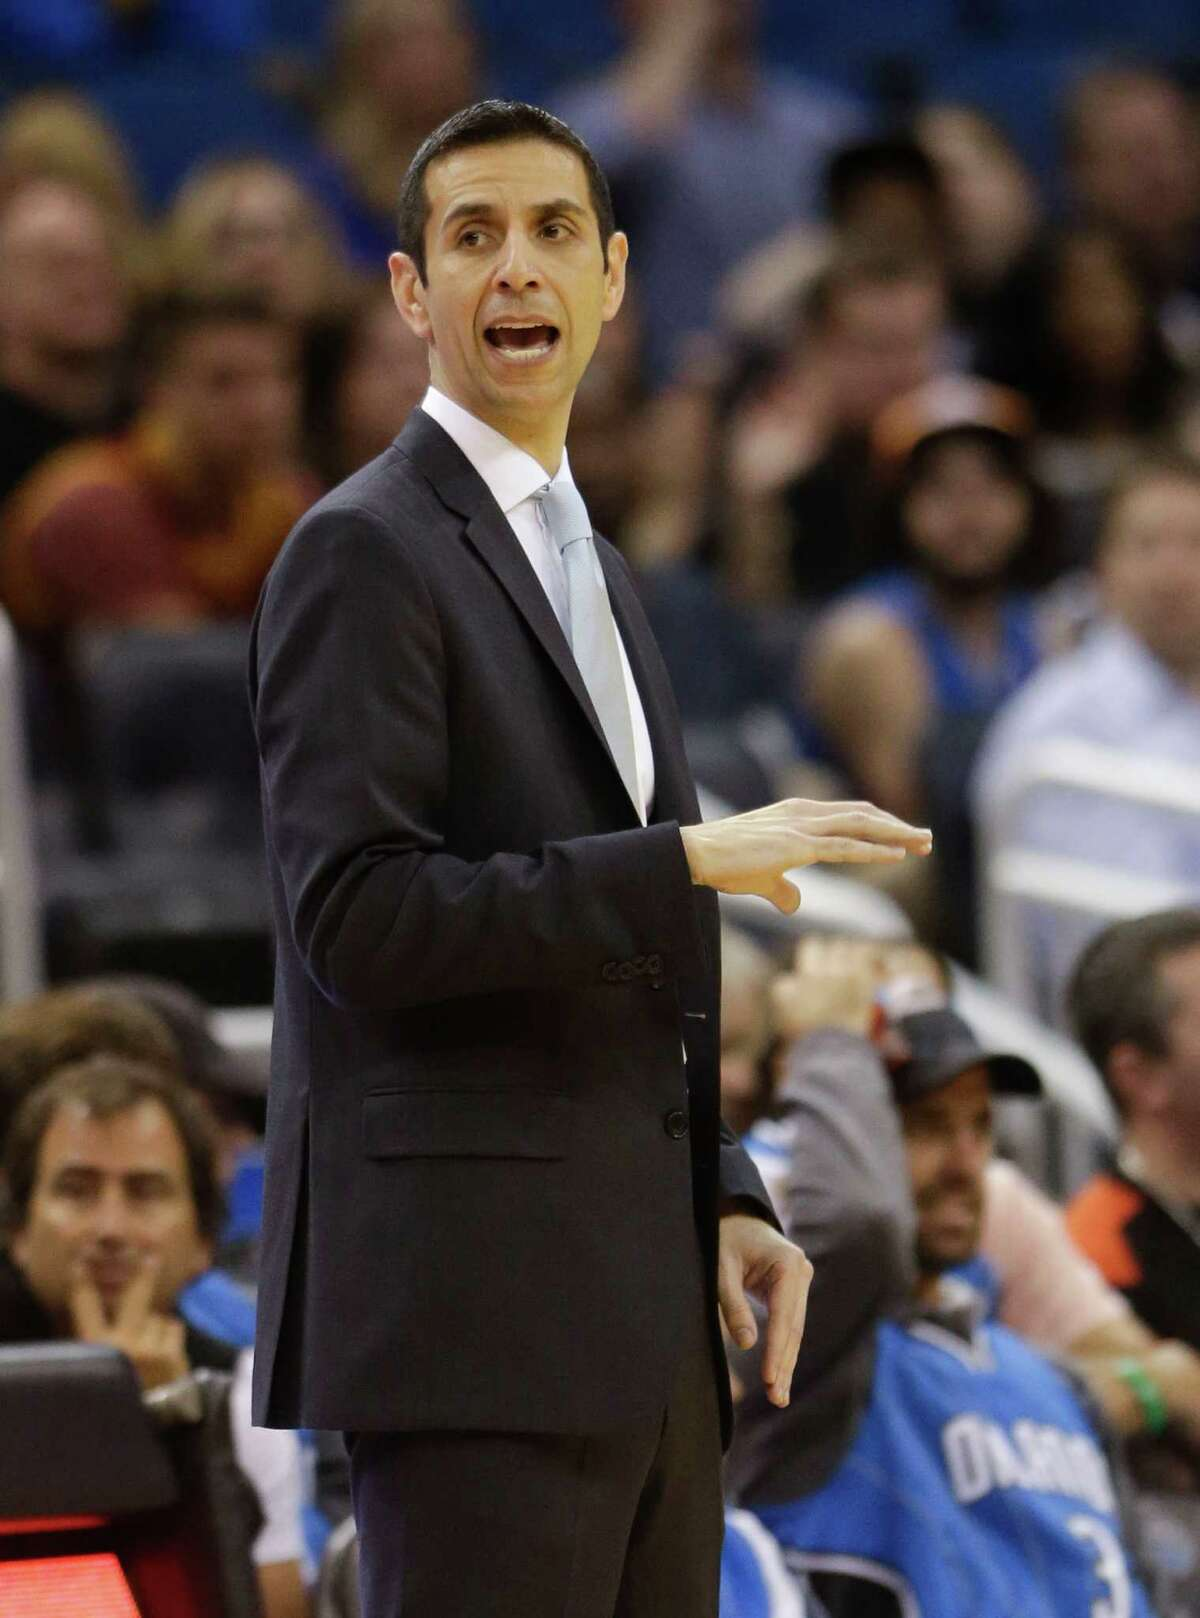 Orlando Magic interim head coach James Borrego directs his players on the court during the second half of an NBA basketball game against the Cleveland Cavaliers, Sunday, March 15, 2015, in Orlando, Fla. Cleveland won 123-108. (AP Photo/John Raoux)